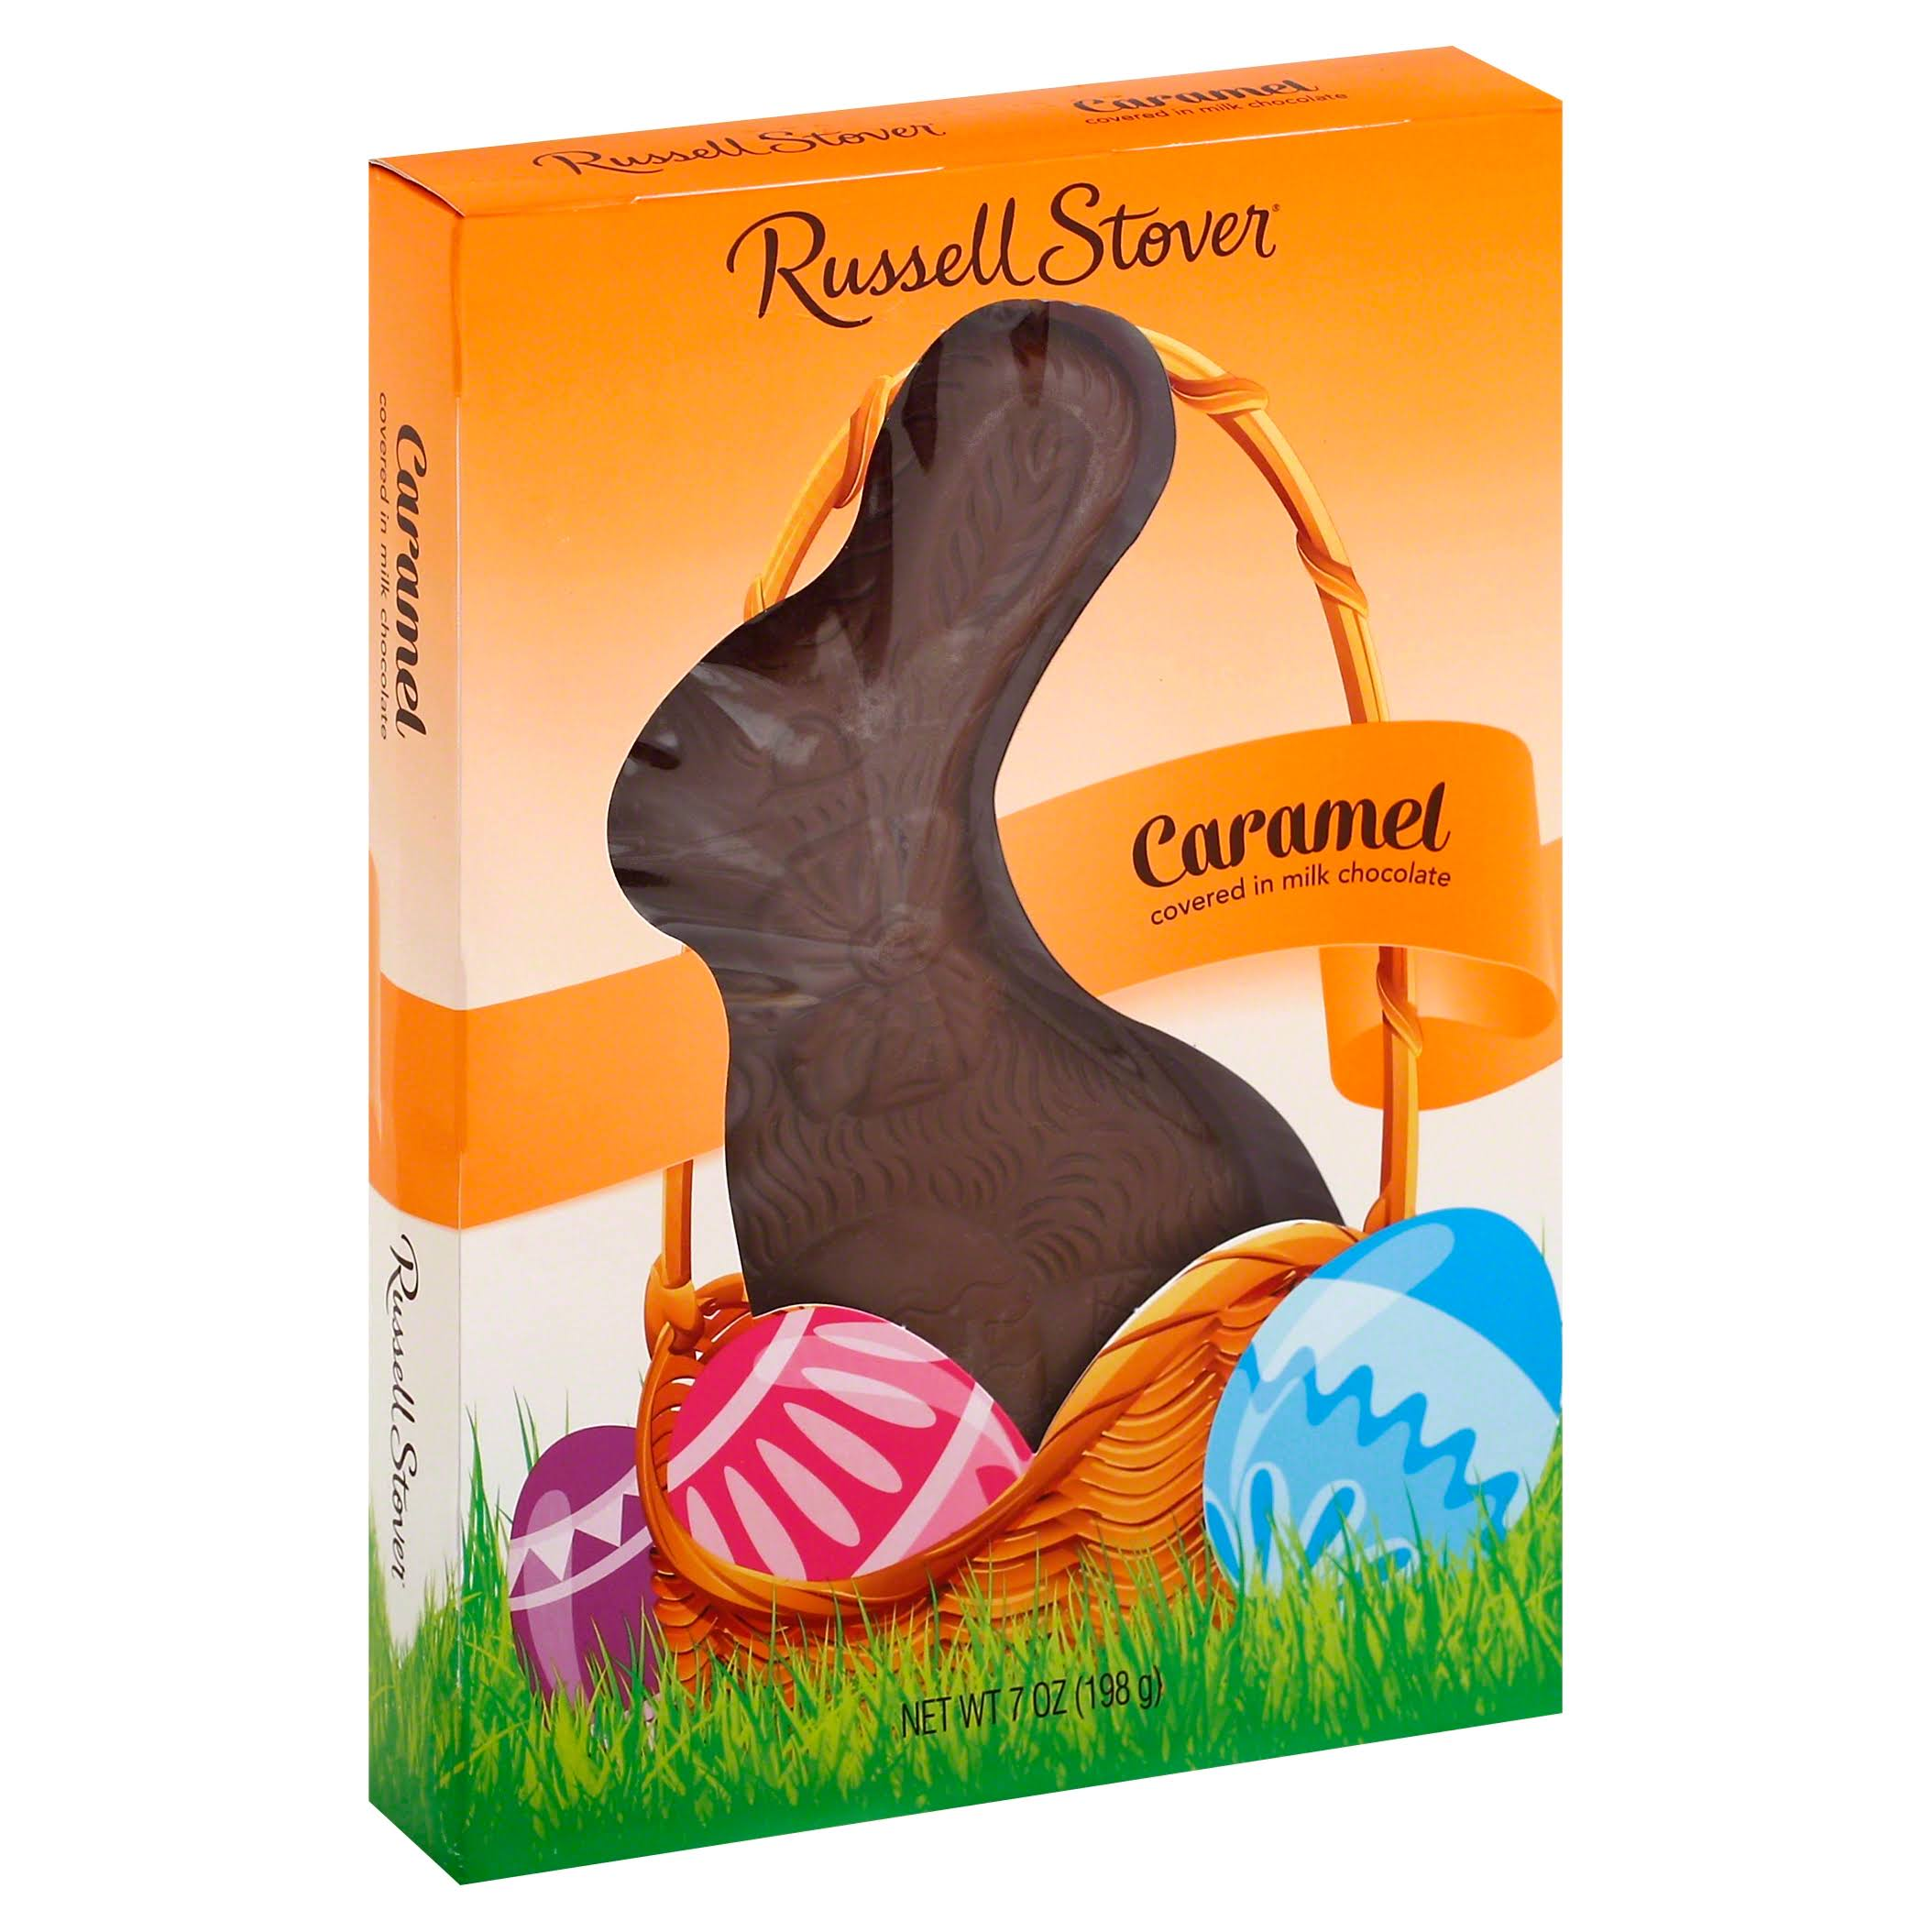 Russell Stover Caramel, Covered in Milk Chocolate - 7 oz